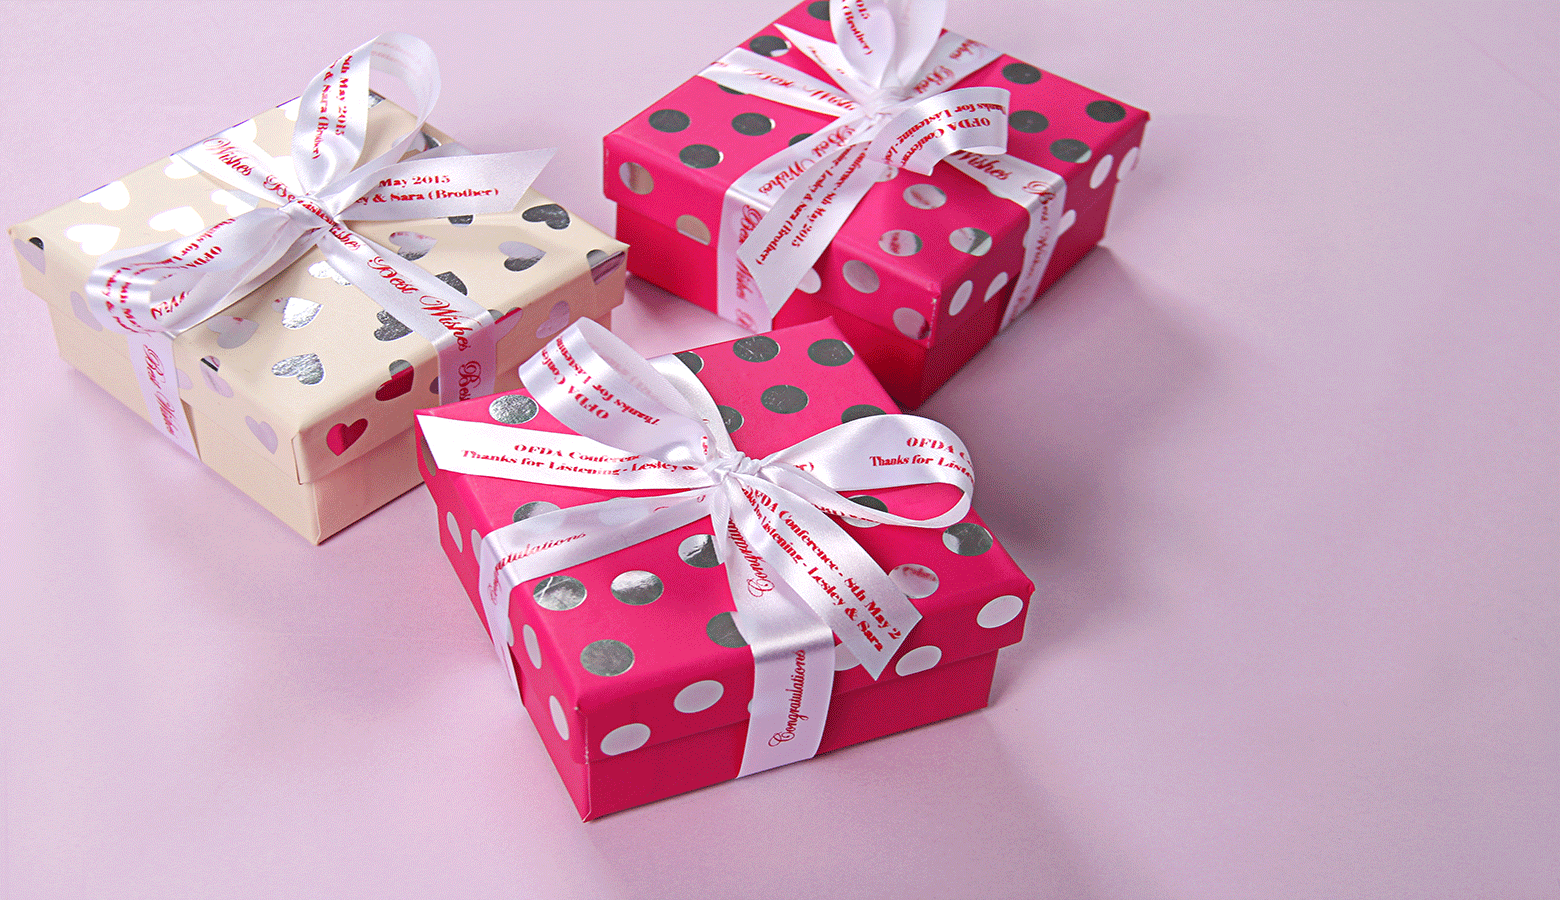 3 gifts in boxes with ribbons